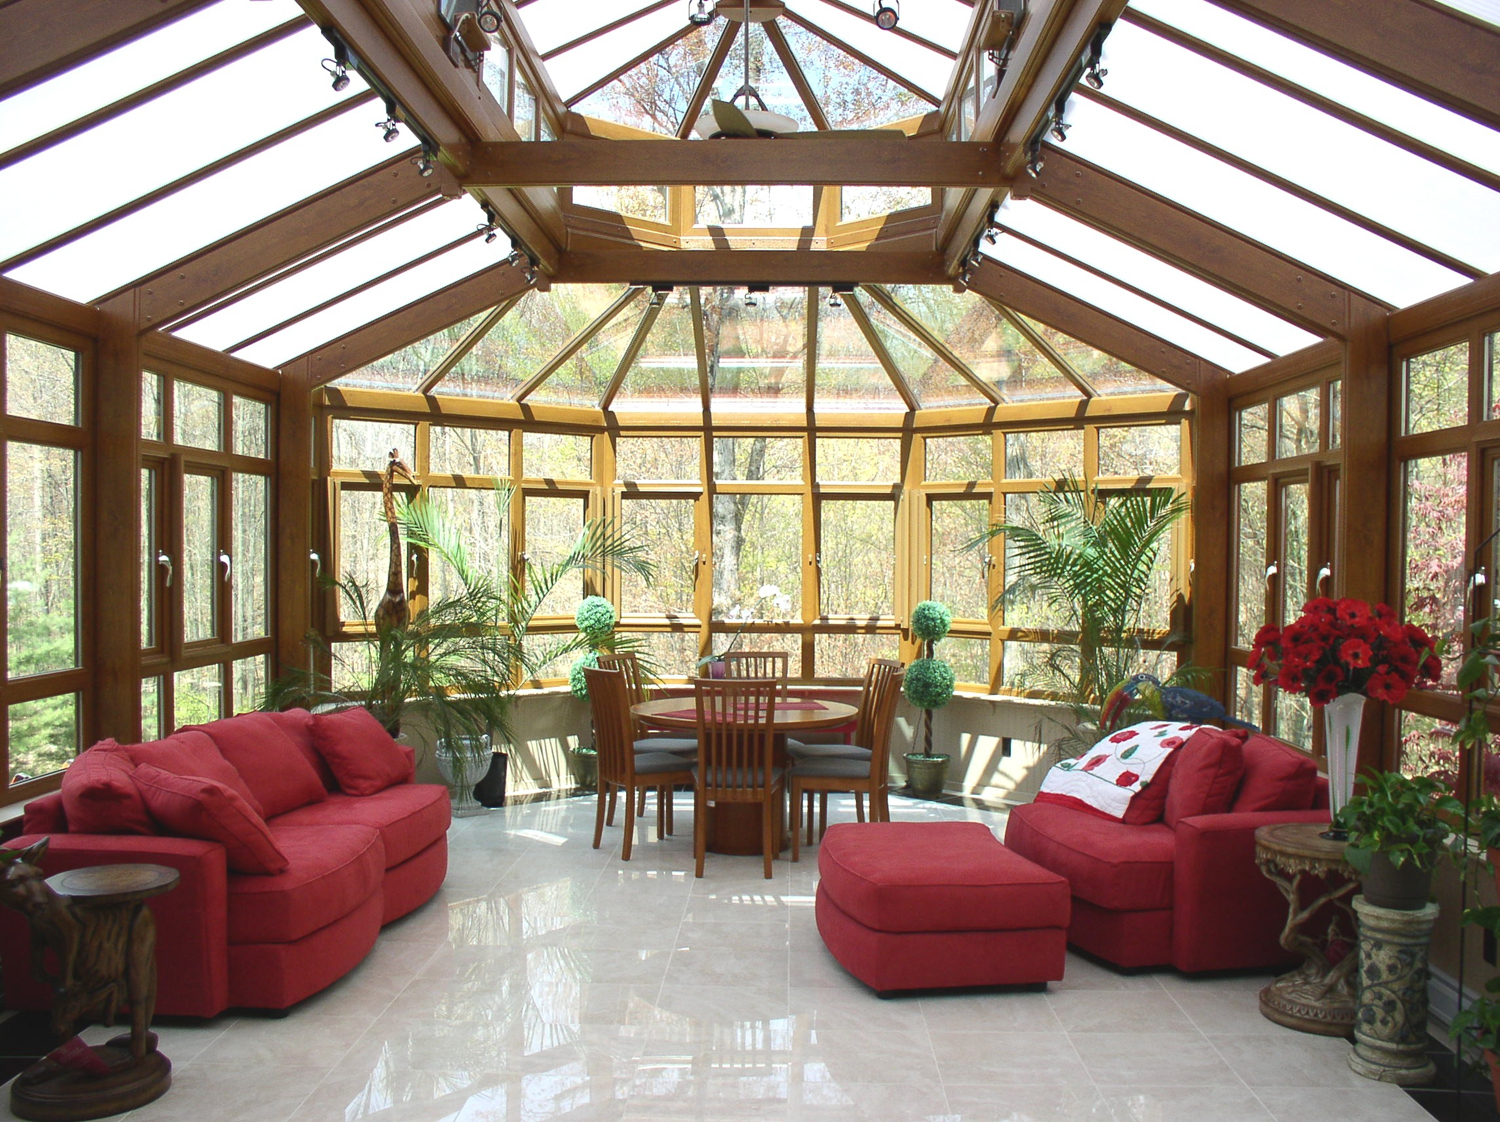 sunroom-ideas New Home Plans With Sunrooms on cheap sunrooms, home plans with master bedroom suites, home plans with foyers, home plans with motor courts, southern sunrooms, home plans with game rooms, home plans with home, outdoor sunrooms, home plans with windows, home plans with greenhouses, pre-built sunrooms, home addition plans for ranch style house, home plans with large master suites, home plans with additions, home plans with open floor plans, home plans with furniture, home plans with french doors, home plans with outdoor living space, stick built sunrooms, home plans with conservatories,